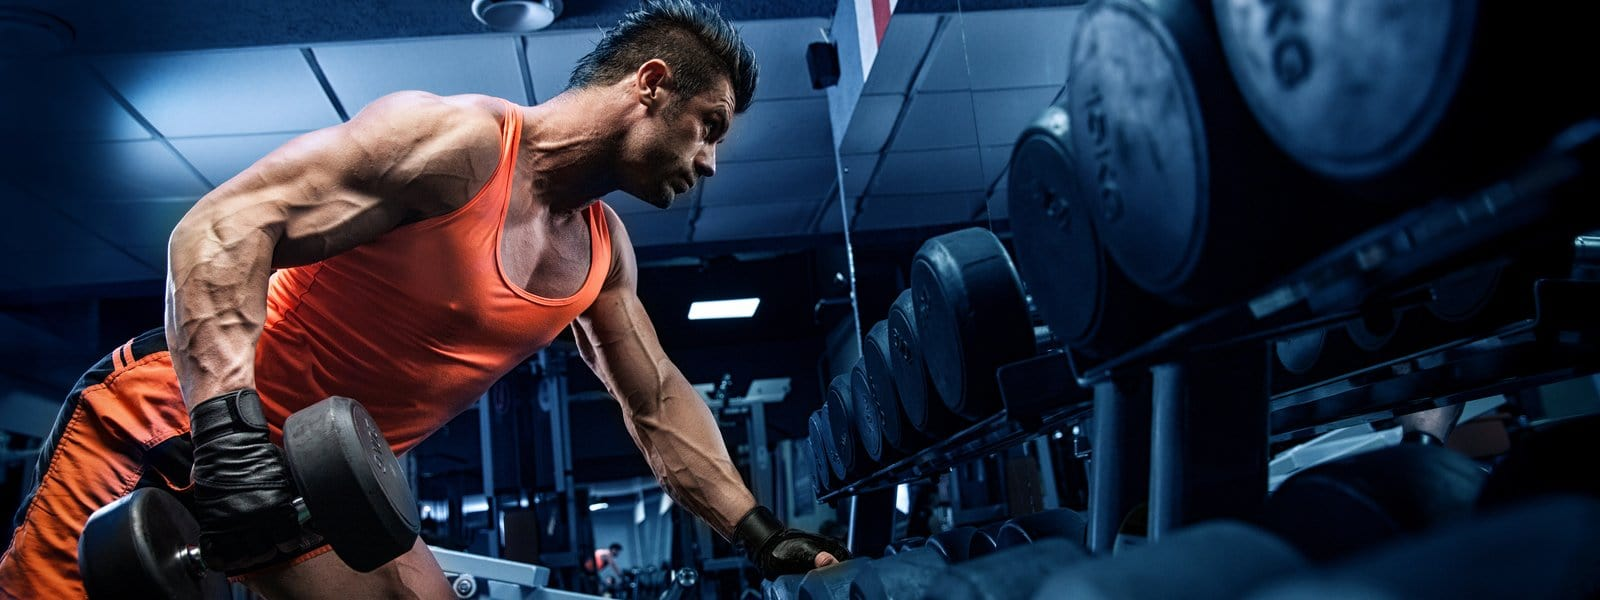 The Biggest Mistake People Make When Trying To Get Shredded